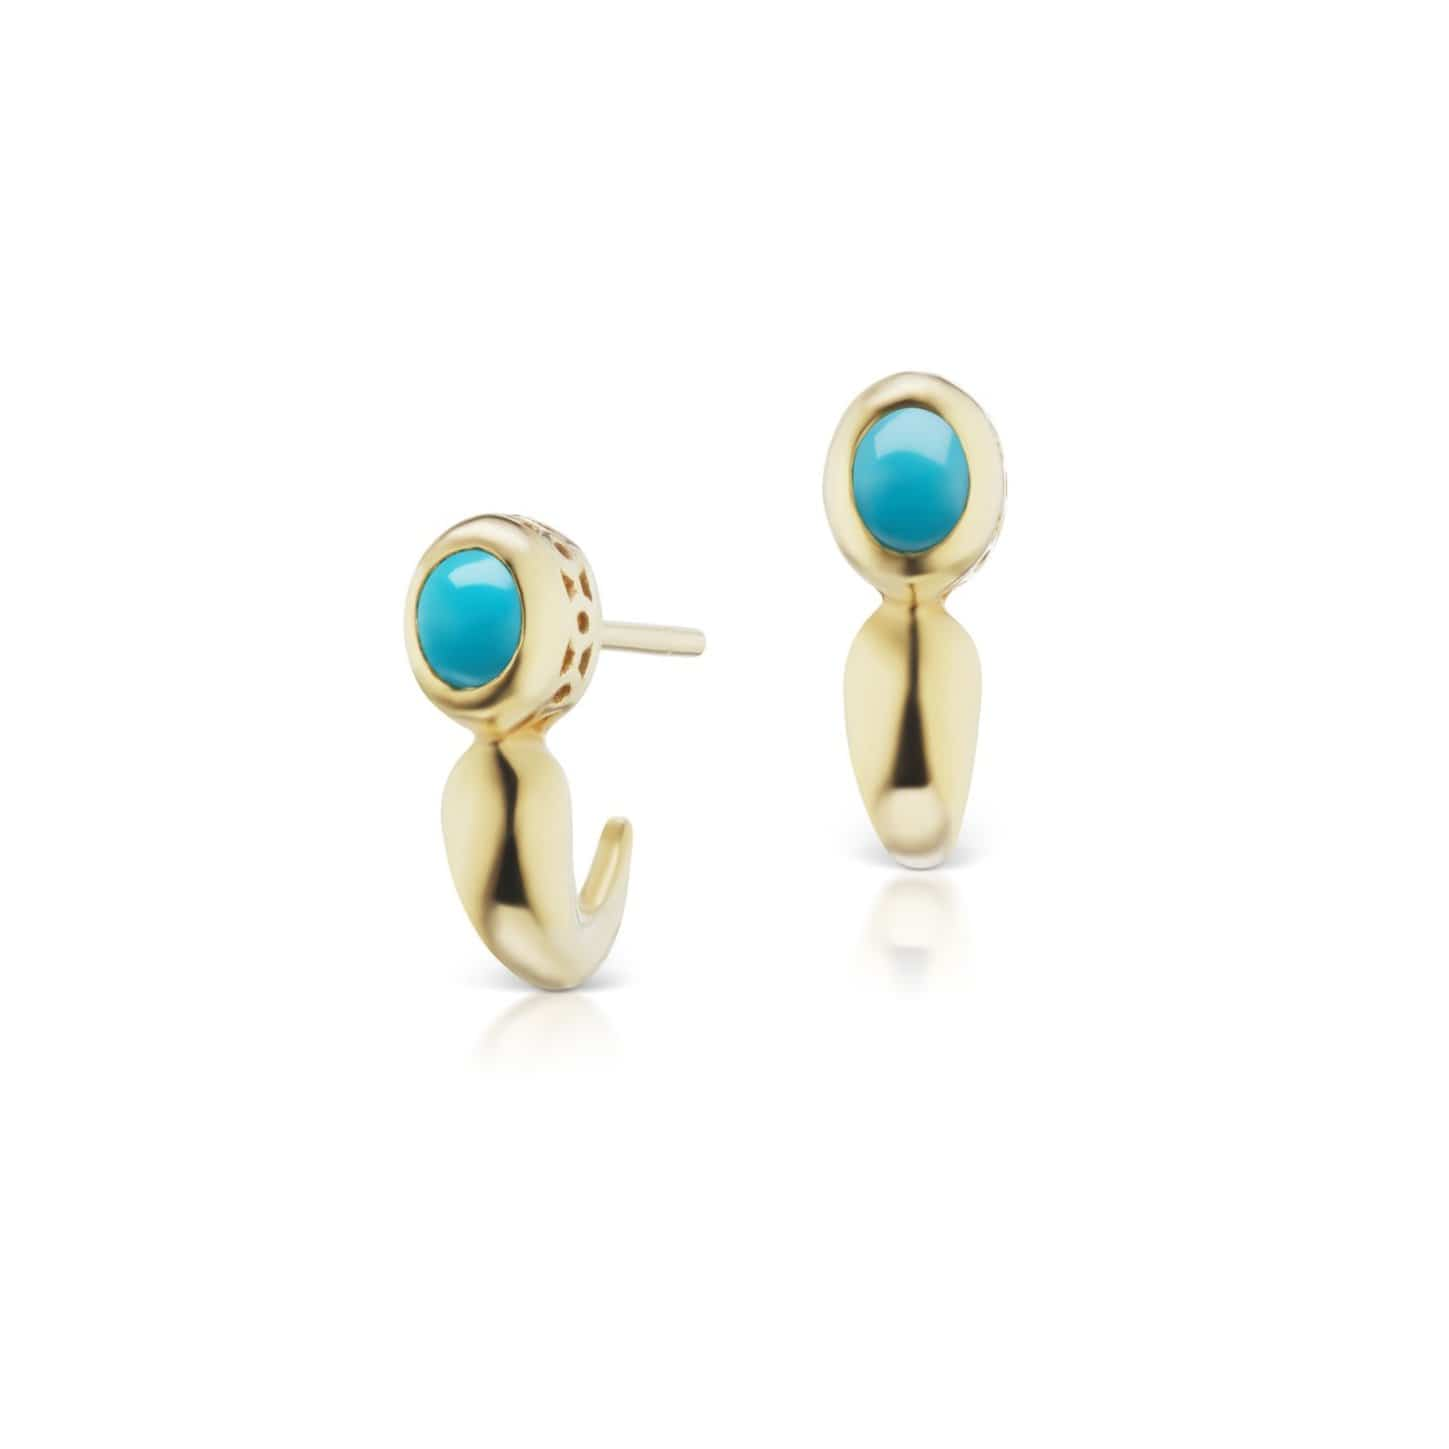 Turquoise Yellow Gold J- hoop Earrings